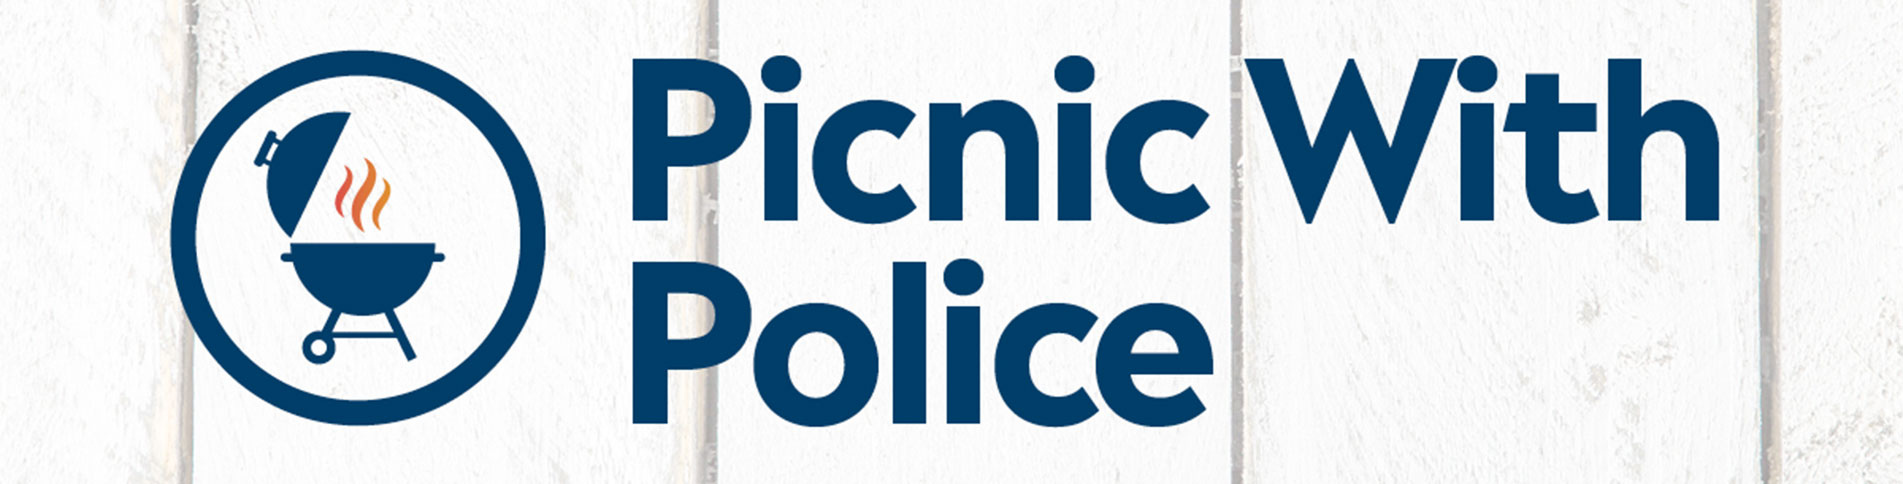 Picnic with Police and grill graphic